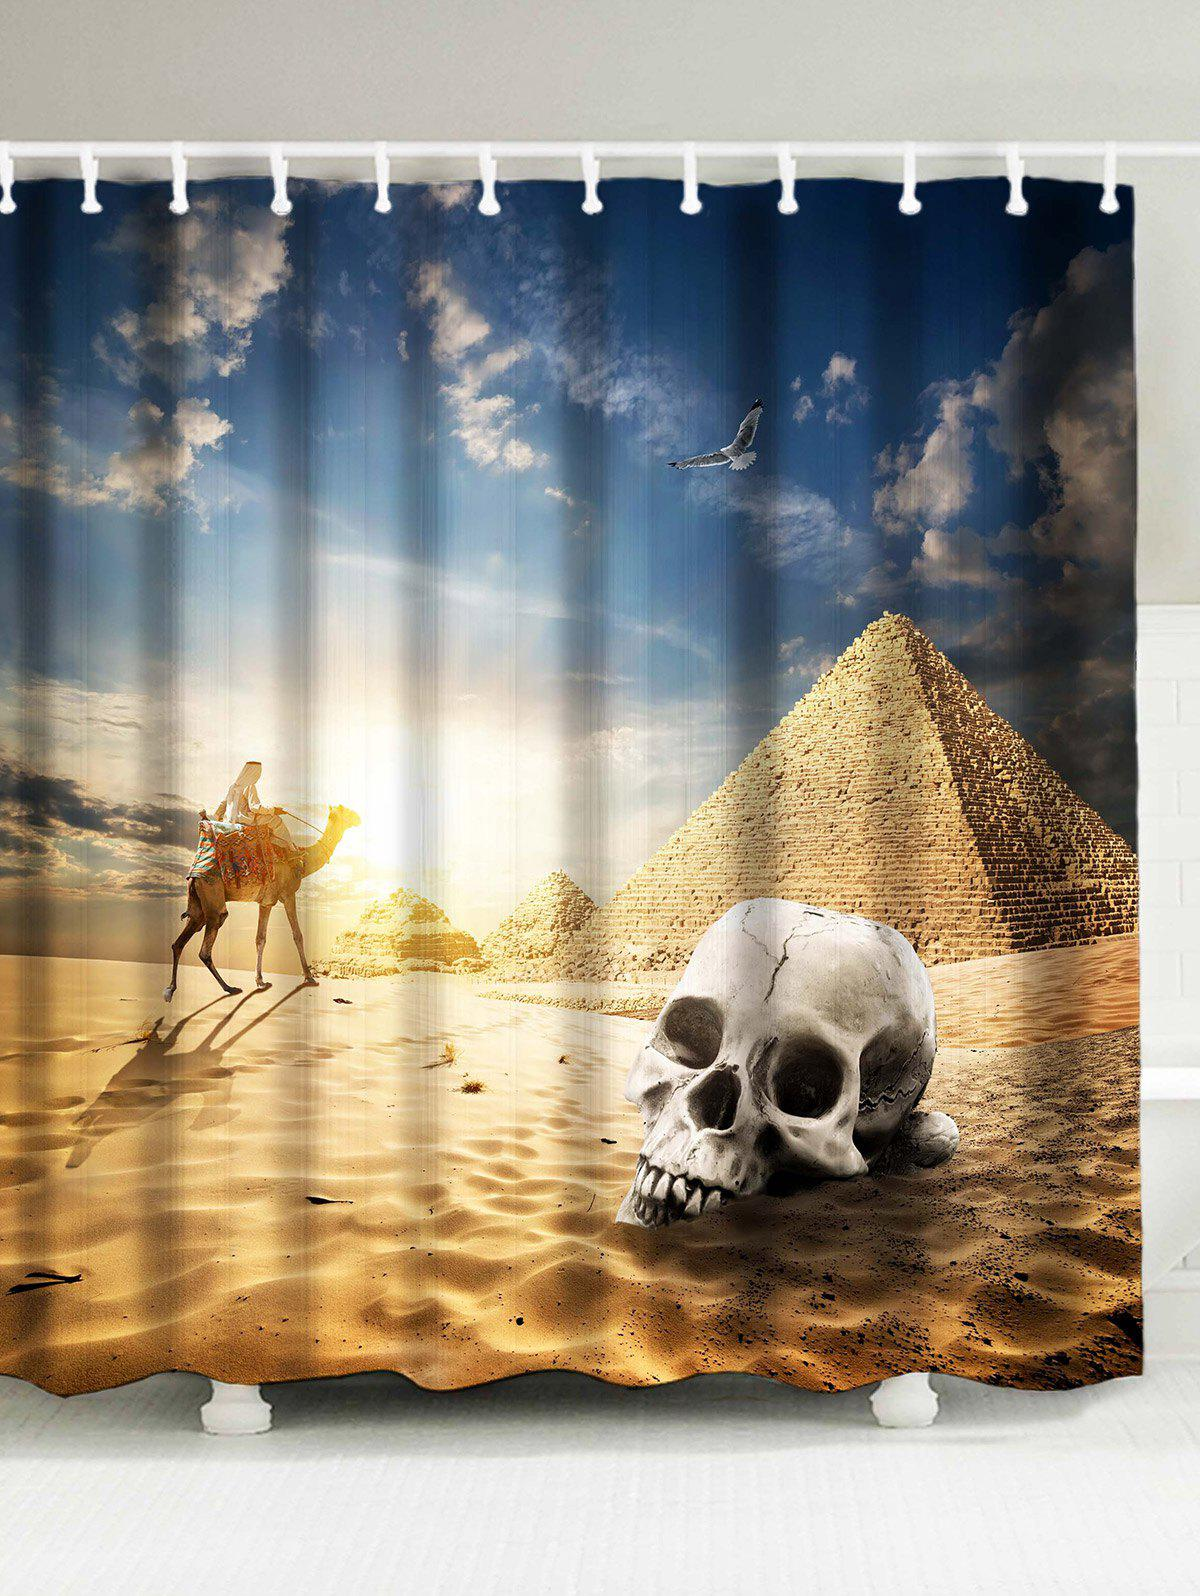 Egypt Pyramid Scenic Print Shower Curtain футболка billy the kid